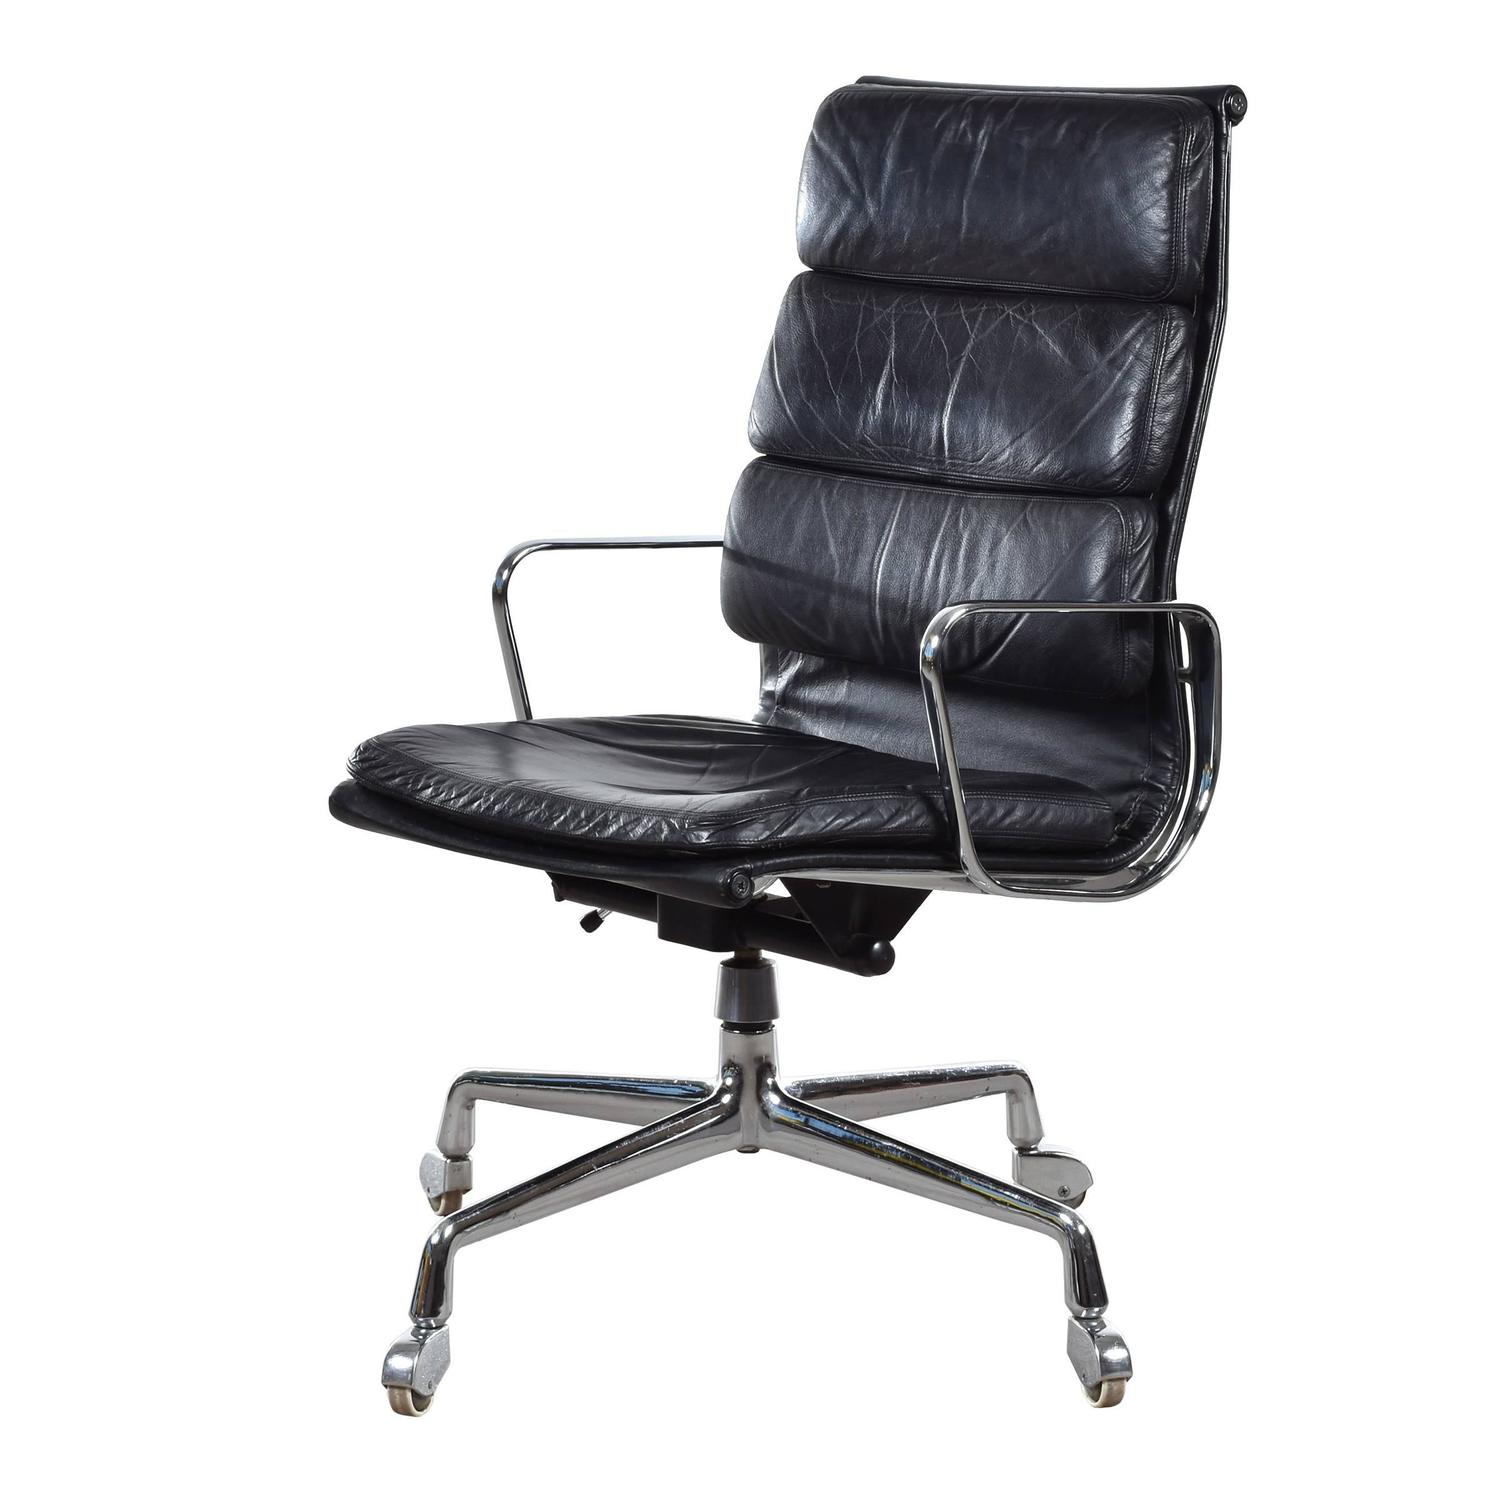 Eames Desk Chair Eames Ea219 Executive Office Chair For Vitra Fehlbaum At